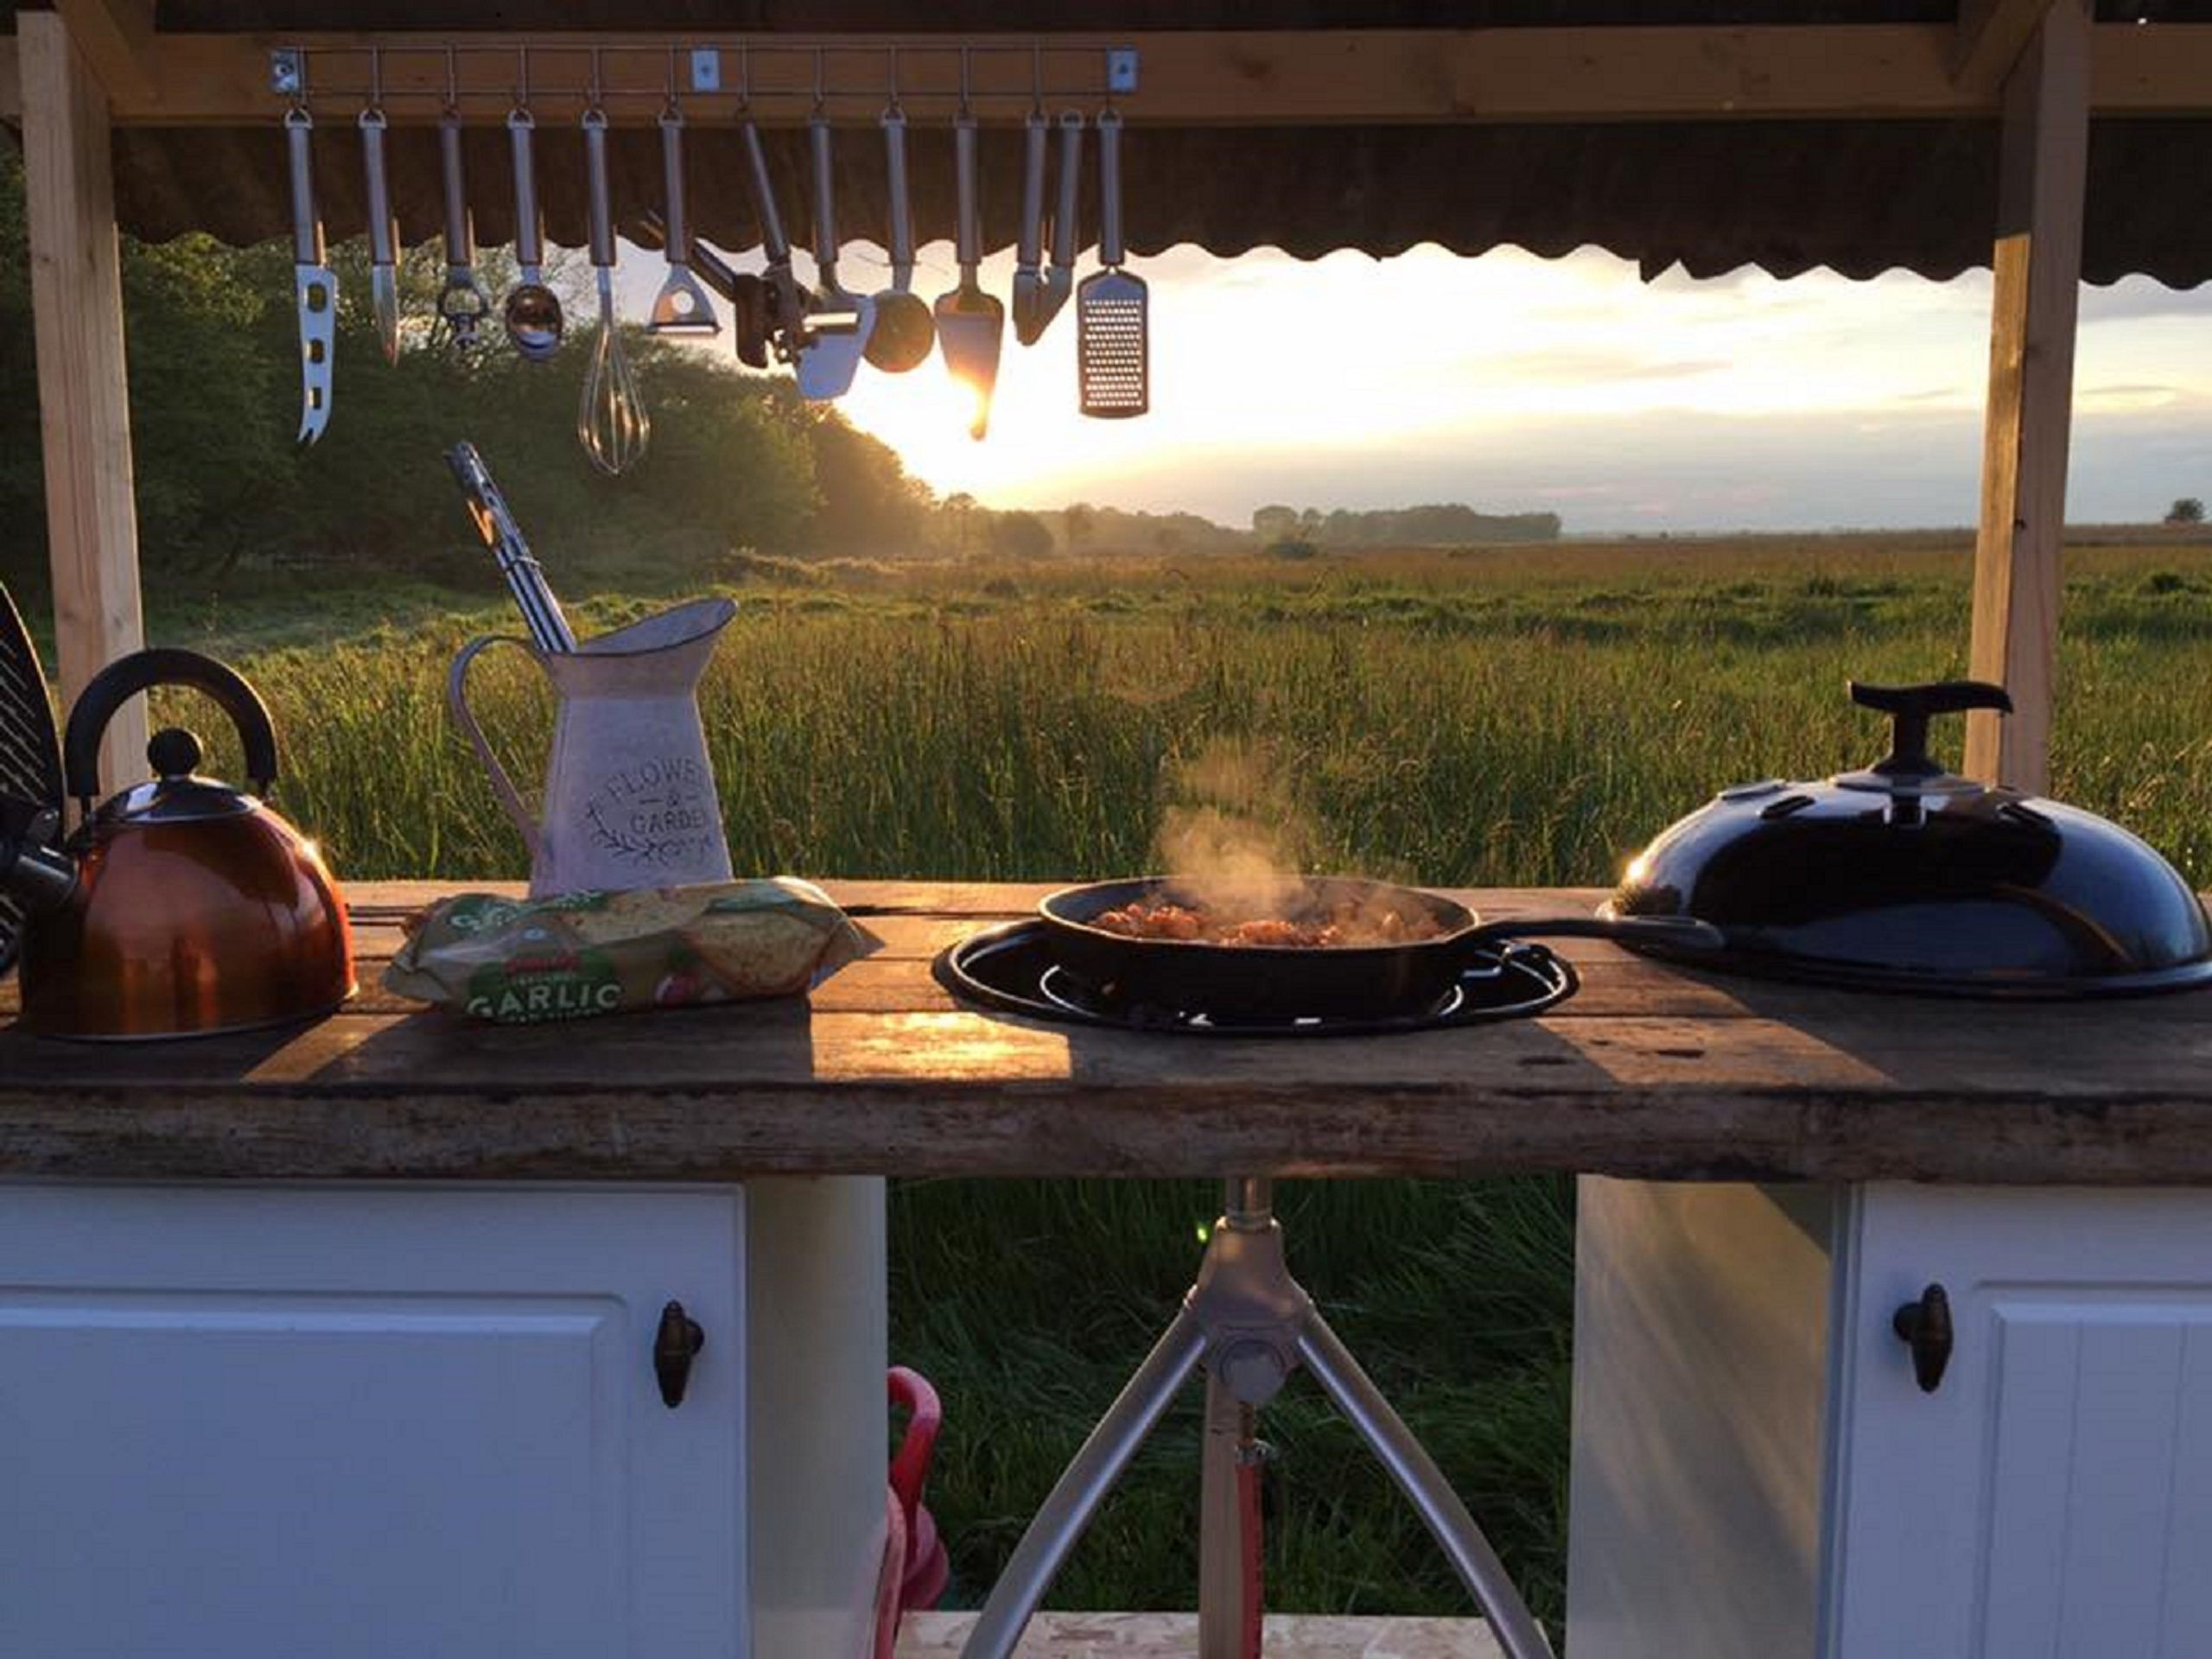 brambells glamping marshview outdoor kitchen luxury camping breakfast